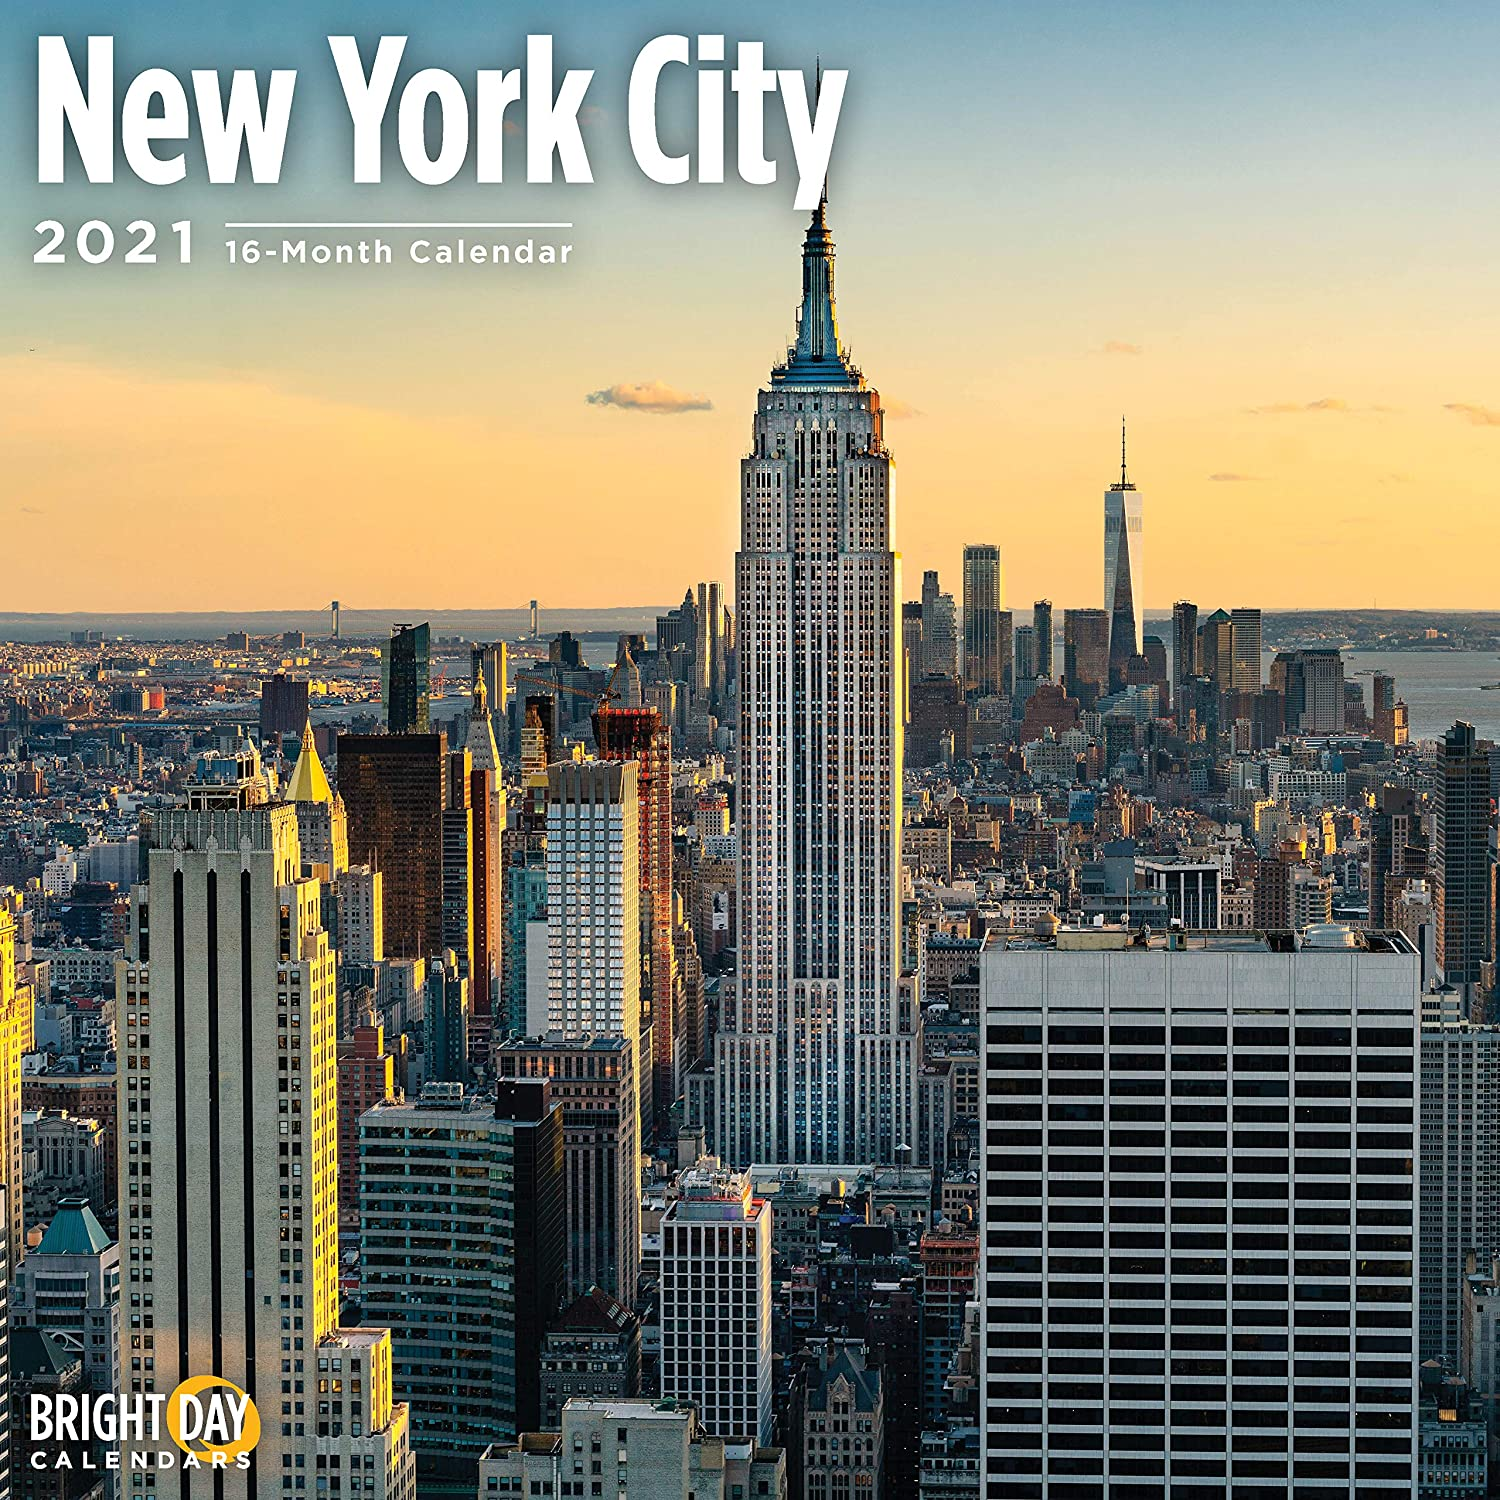 New York Calendar 2021 Amazon.: 2021 New York City Wall Calendar by Bright Day, 12 x